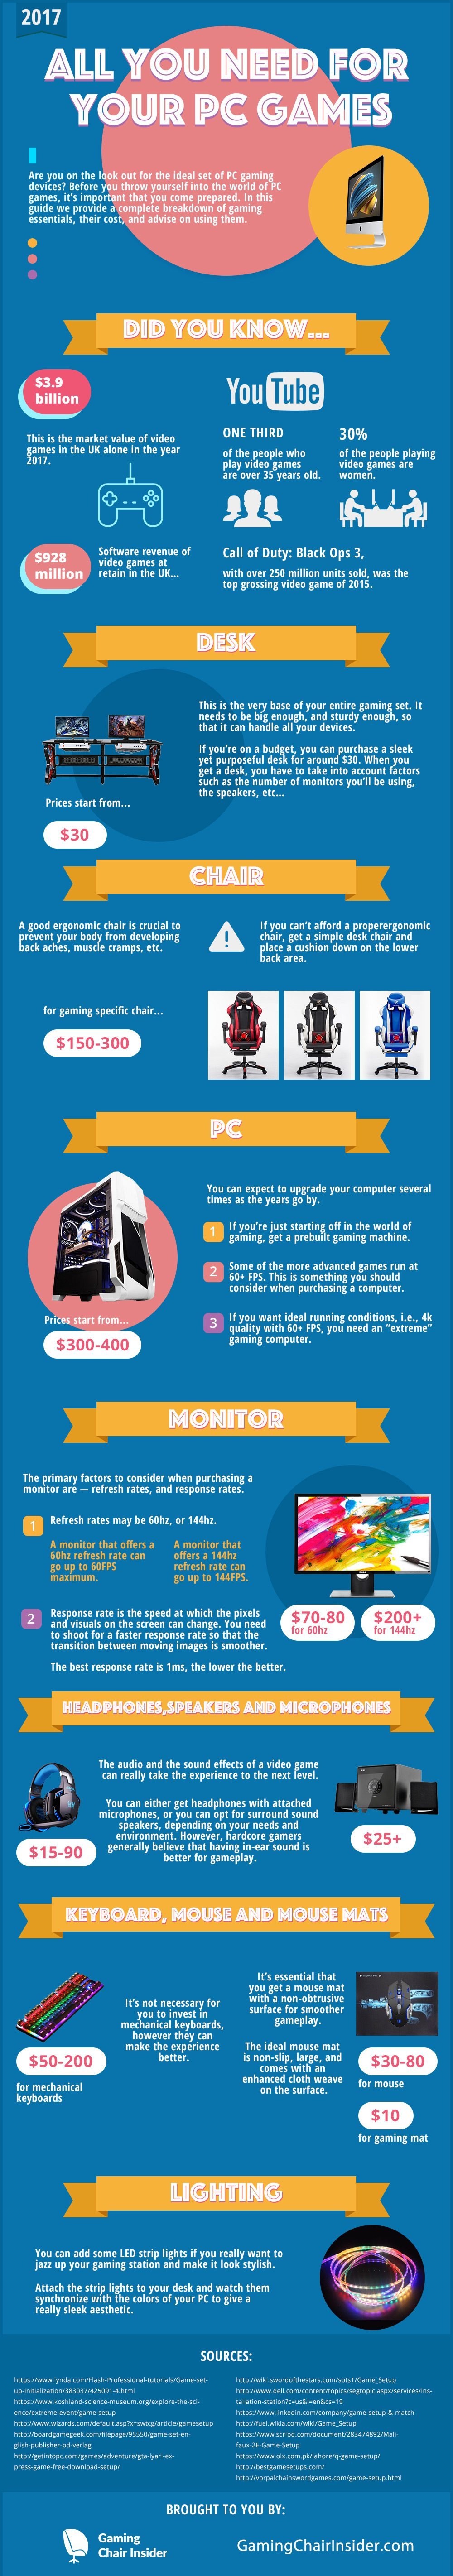 How to Set Up the Perfect PC Gaming Zone - Infographic